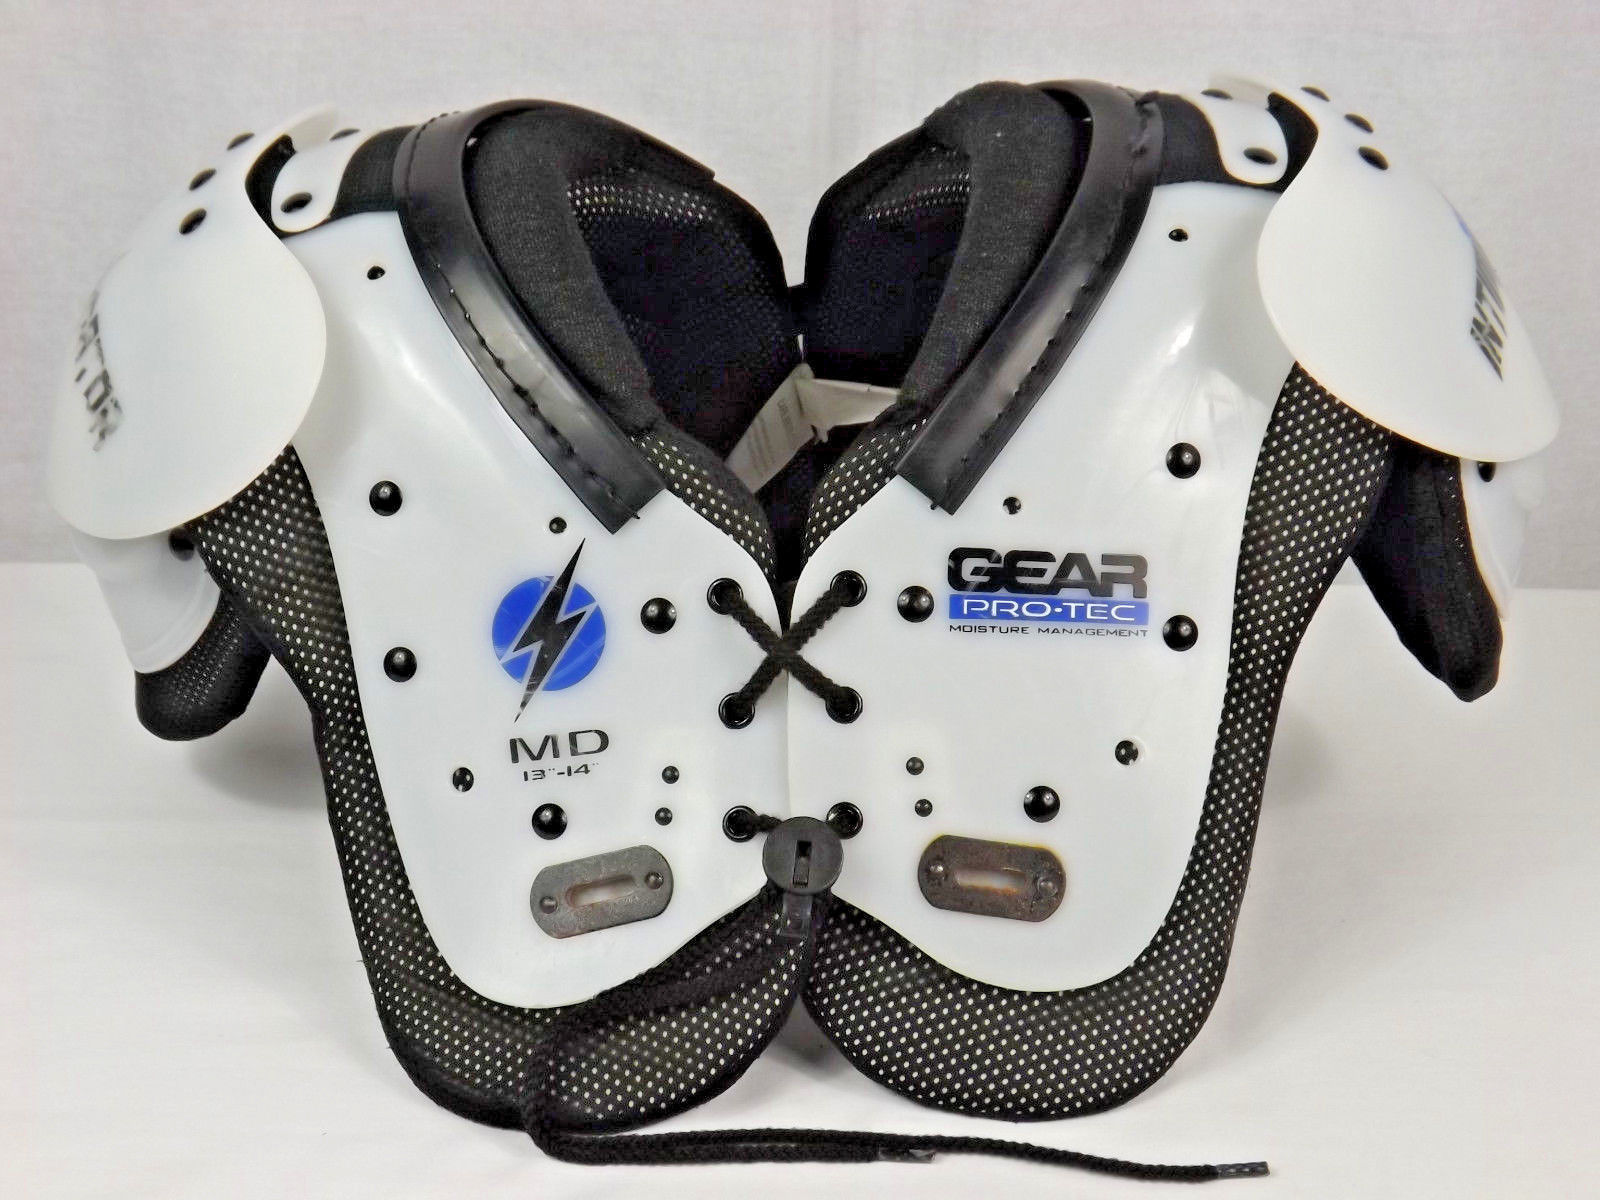 Primary image for Intimidator Shoulder Pads by GEAR Pro-Tec Moisture Management - 95-120 Pounds